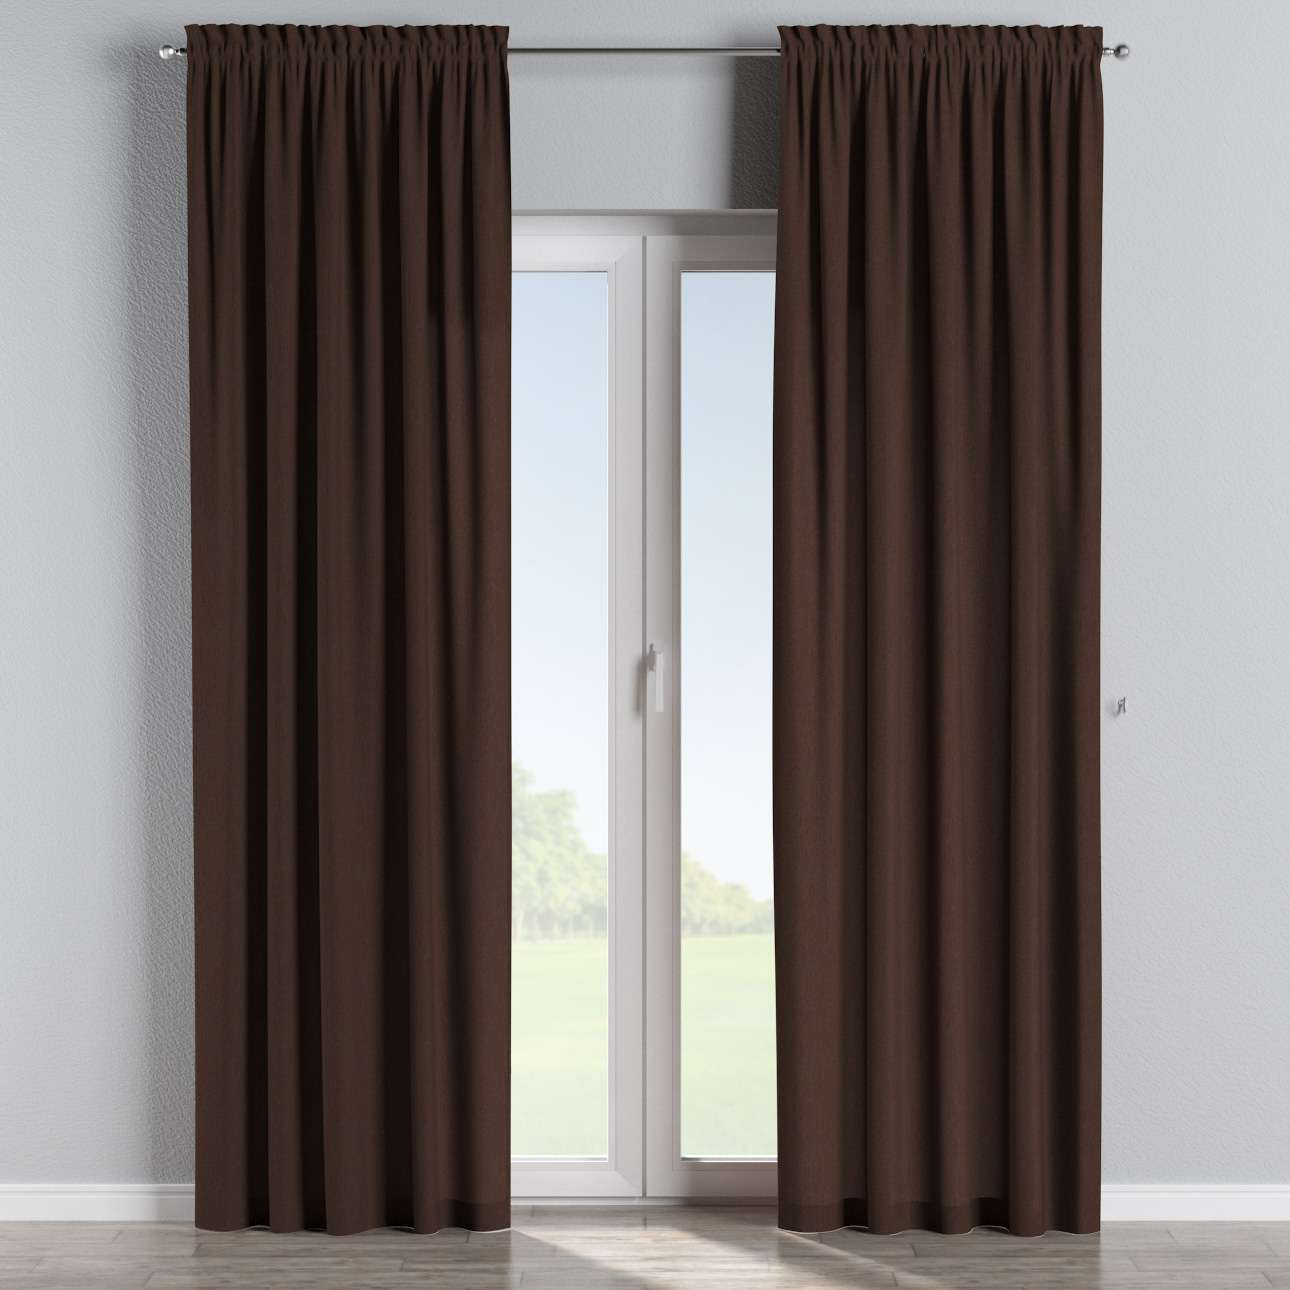 Slot and frill curtains in collection Chenille, fabric: 702-18